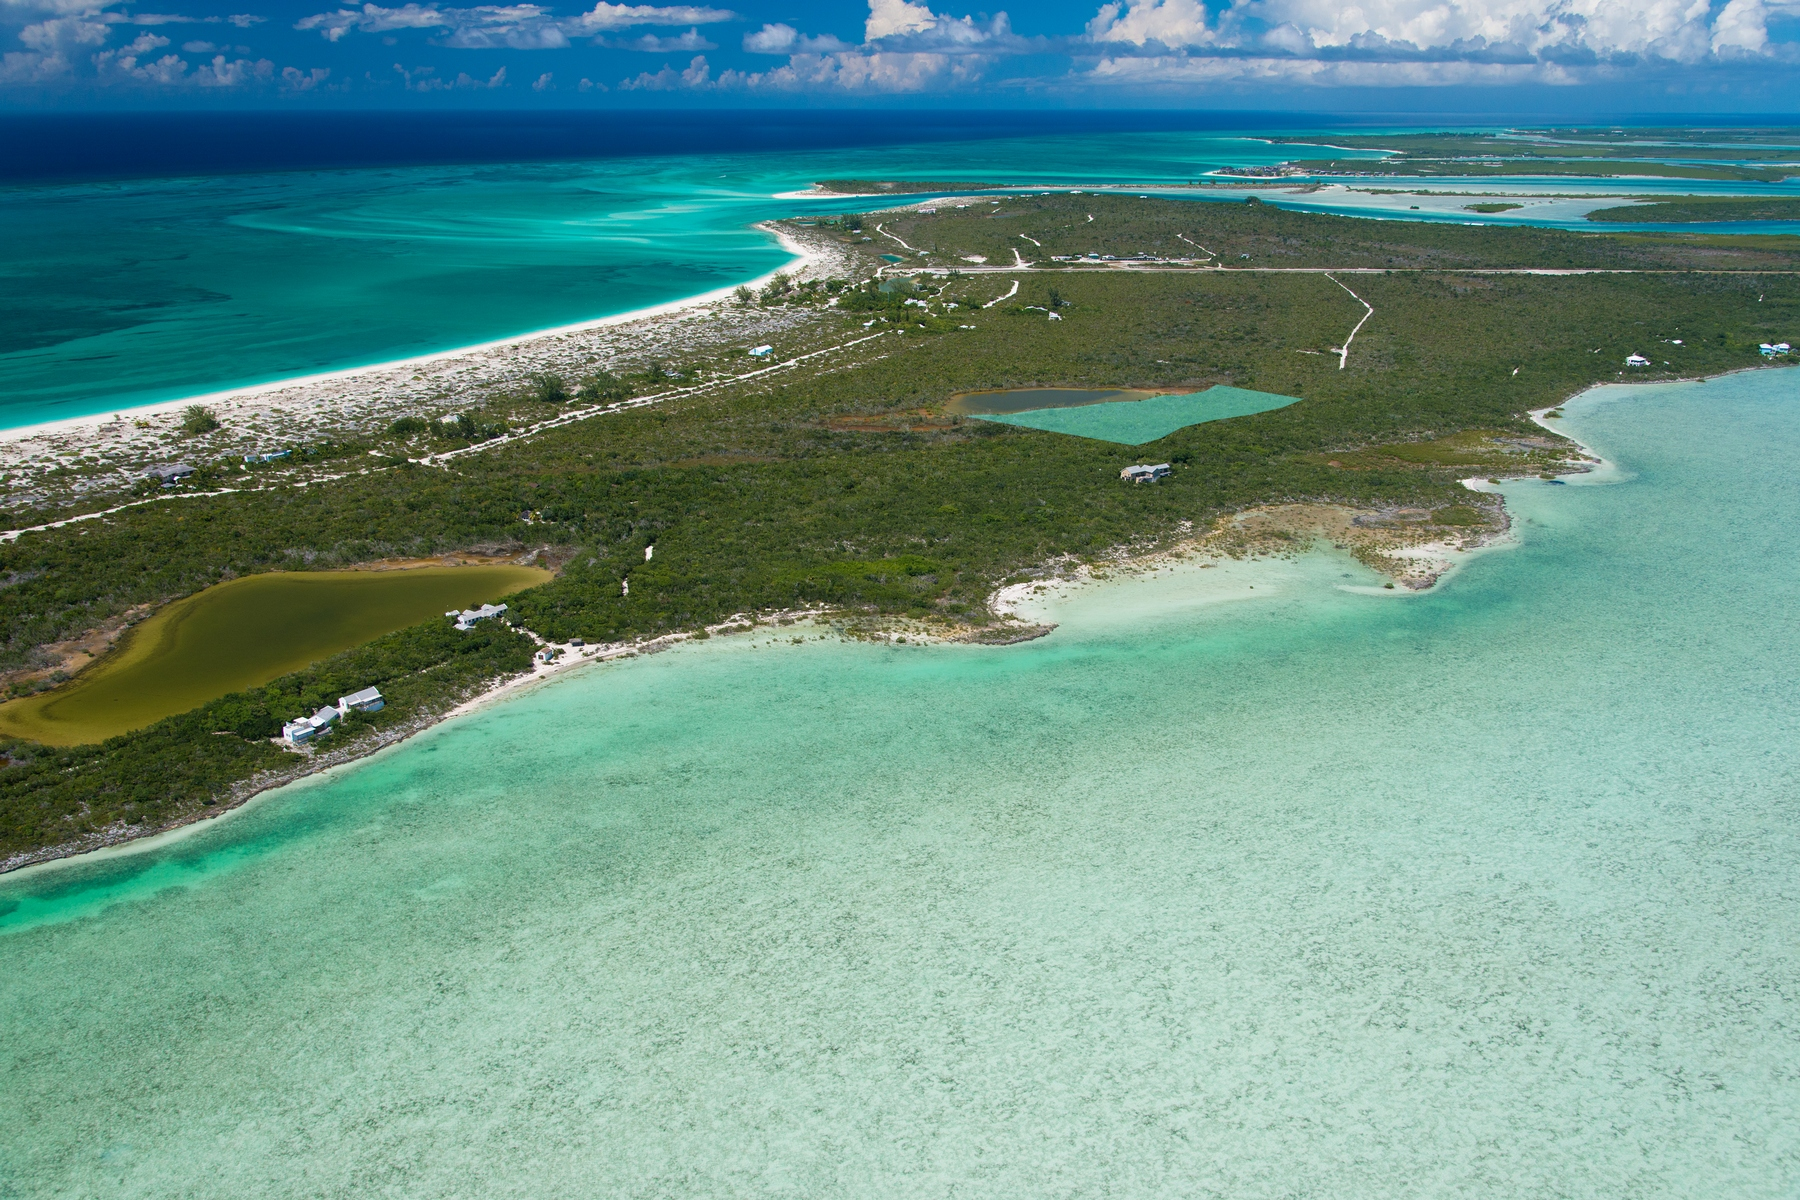 Land for Sale at Pine Cay Land Gardenview Pine Cay, TCI Turks And Caicos Islands